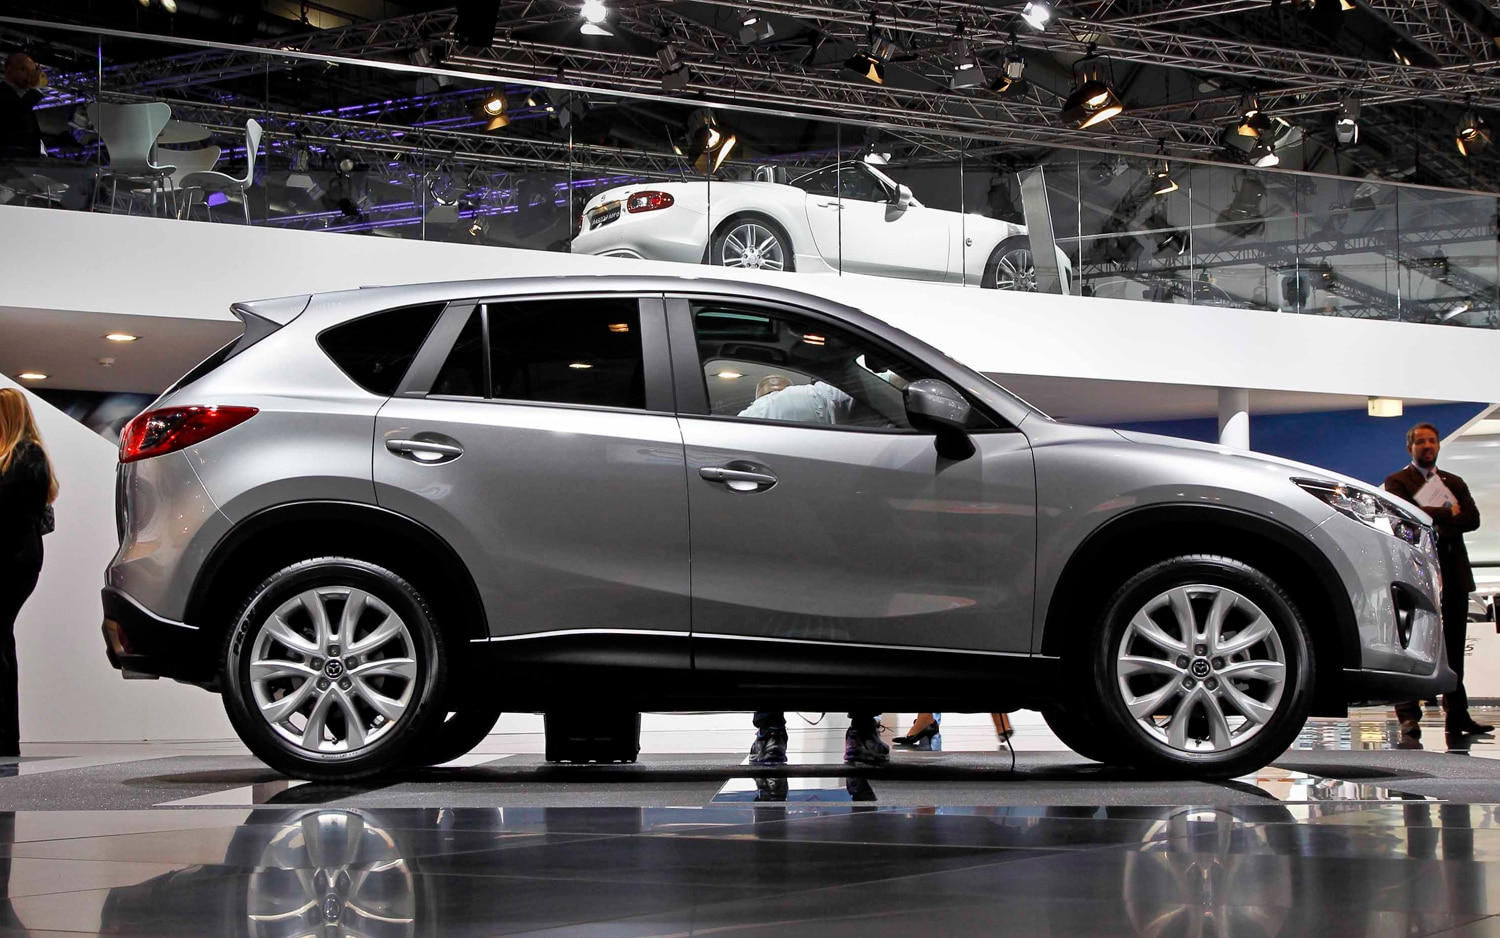 https://st.automobilemag.com/uploads/sites/11/2011/08/2013-Mazda-CX-5-Prototype-side-view.jpg